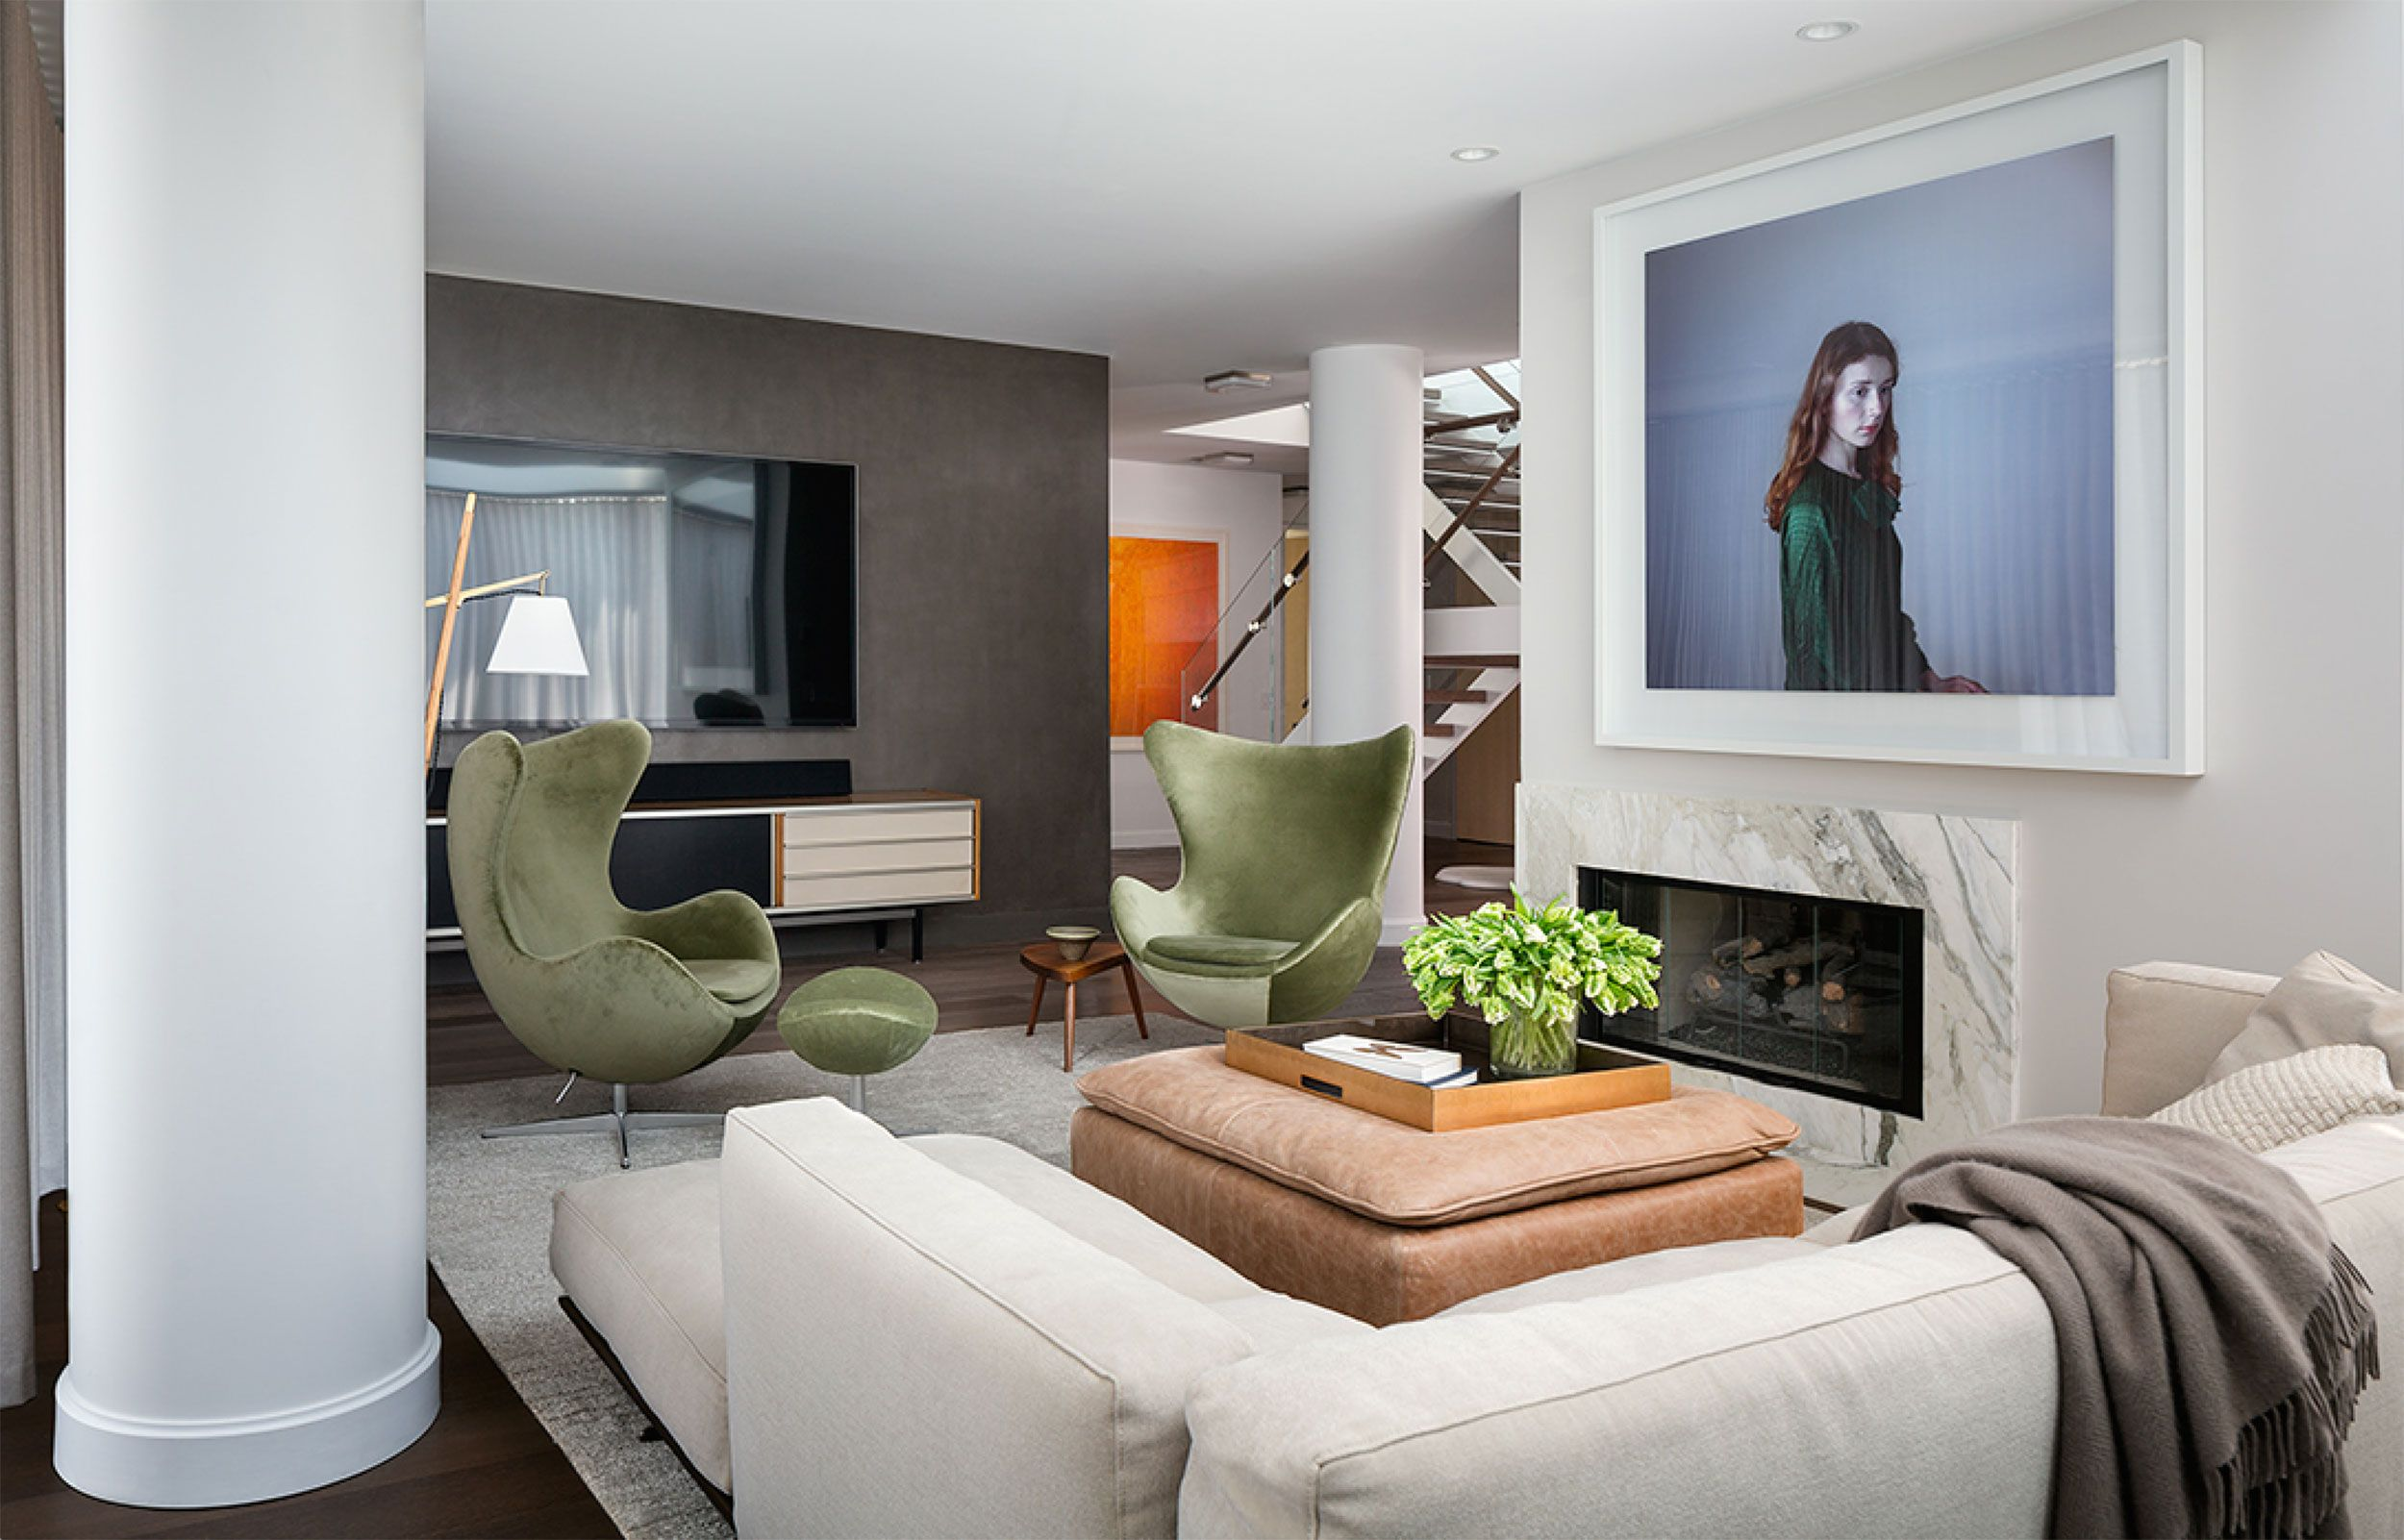 Between venues shuttering and festivals facing major postponements, the pandemic has certainly changed how we experience live music. Top Home Decor Trends For 2021 Best 2021 Living Room Ideas